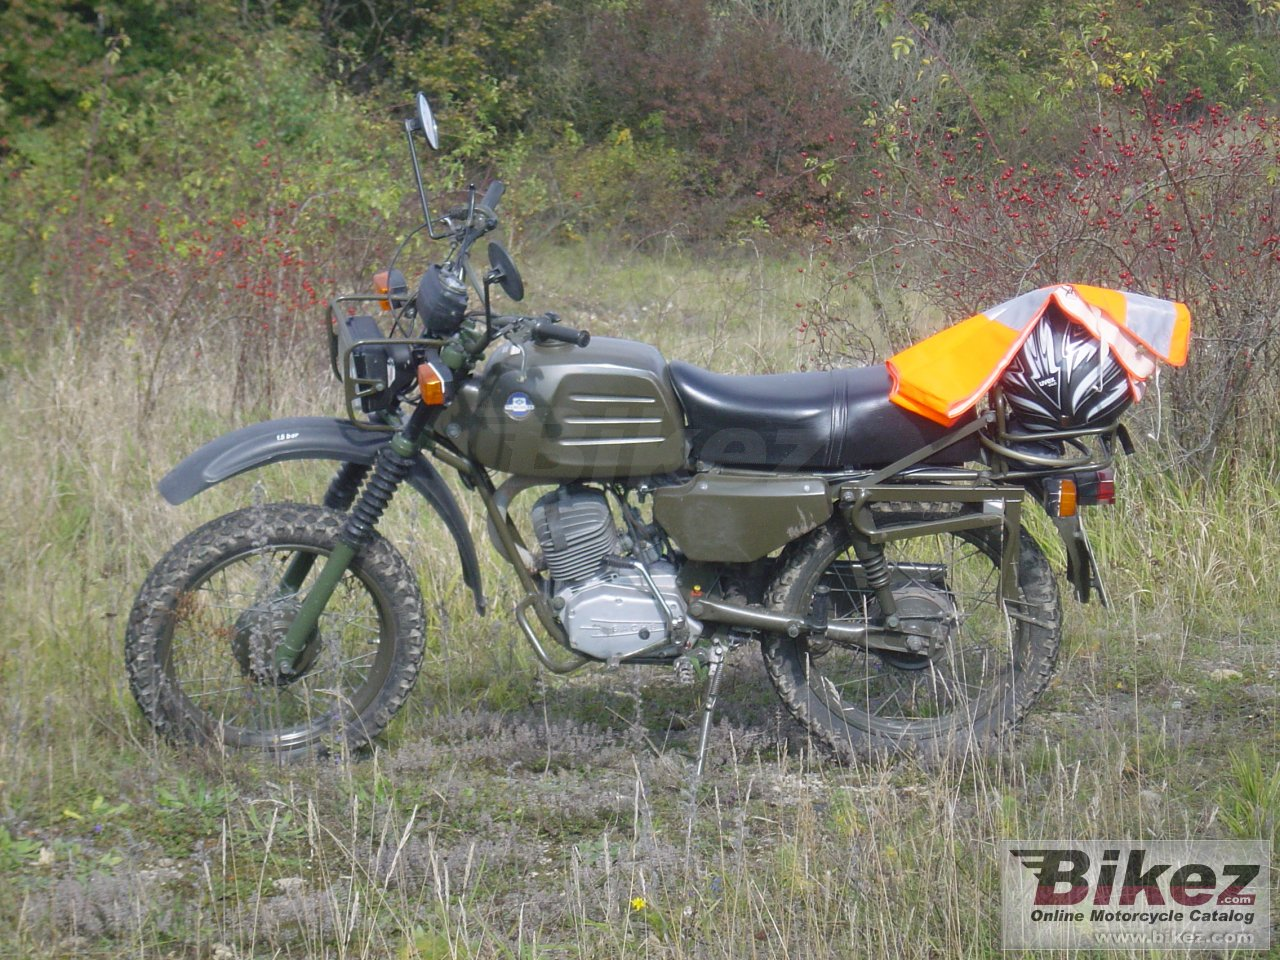 Big rrty^^ k 125 military picture and wallpaper from Bikez.com